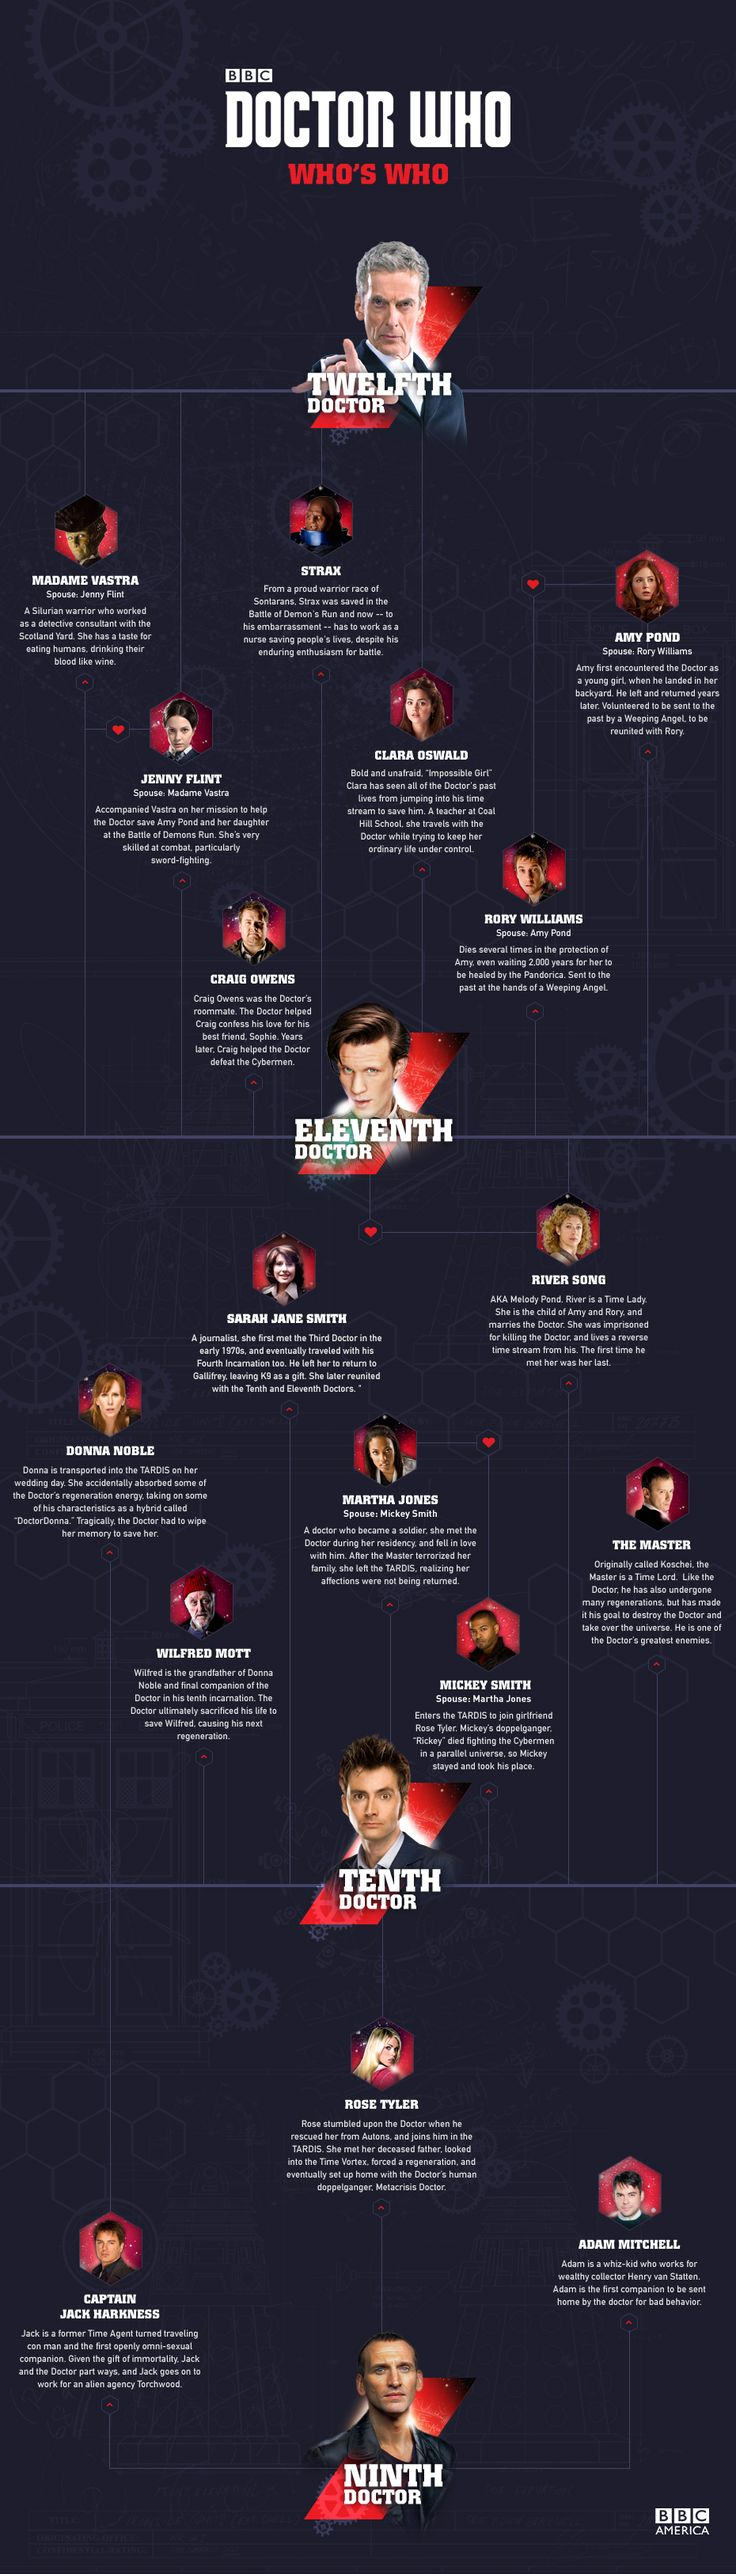 'Doctor Who': Who's 'Who' Family Tree | Extras | Doctor Who | BBC America